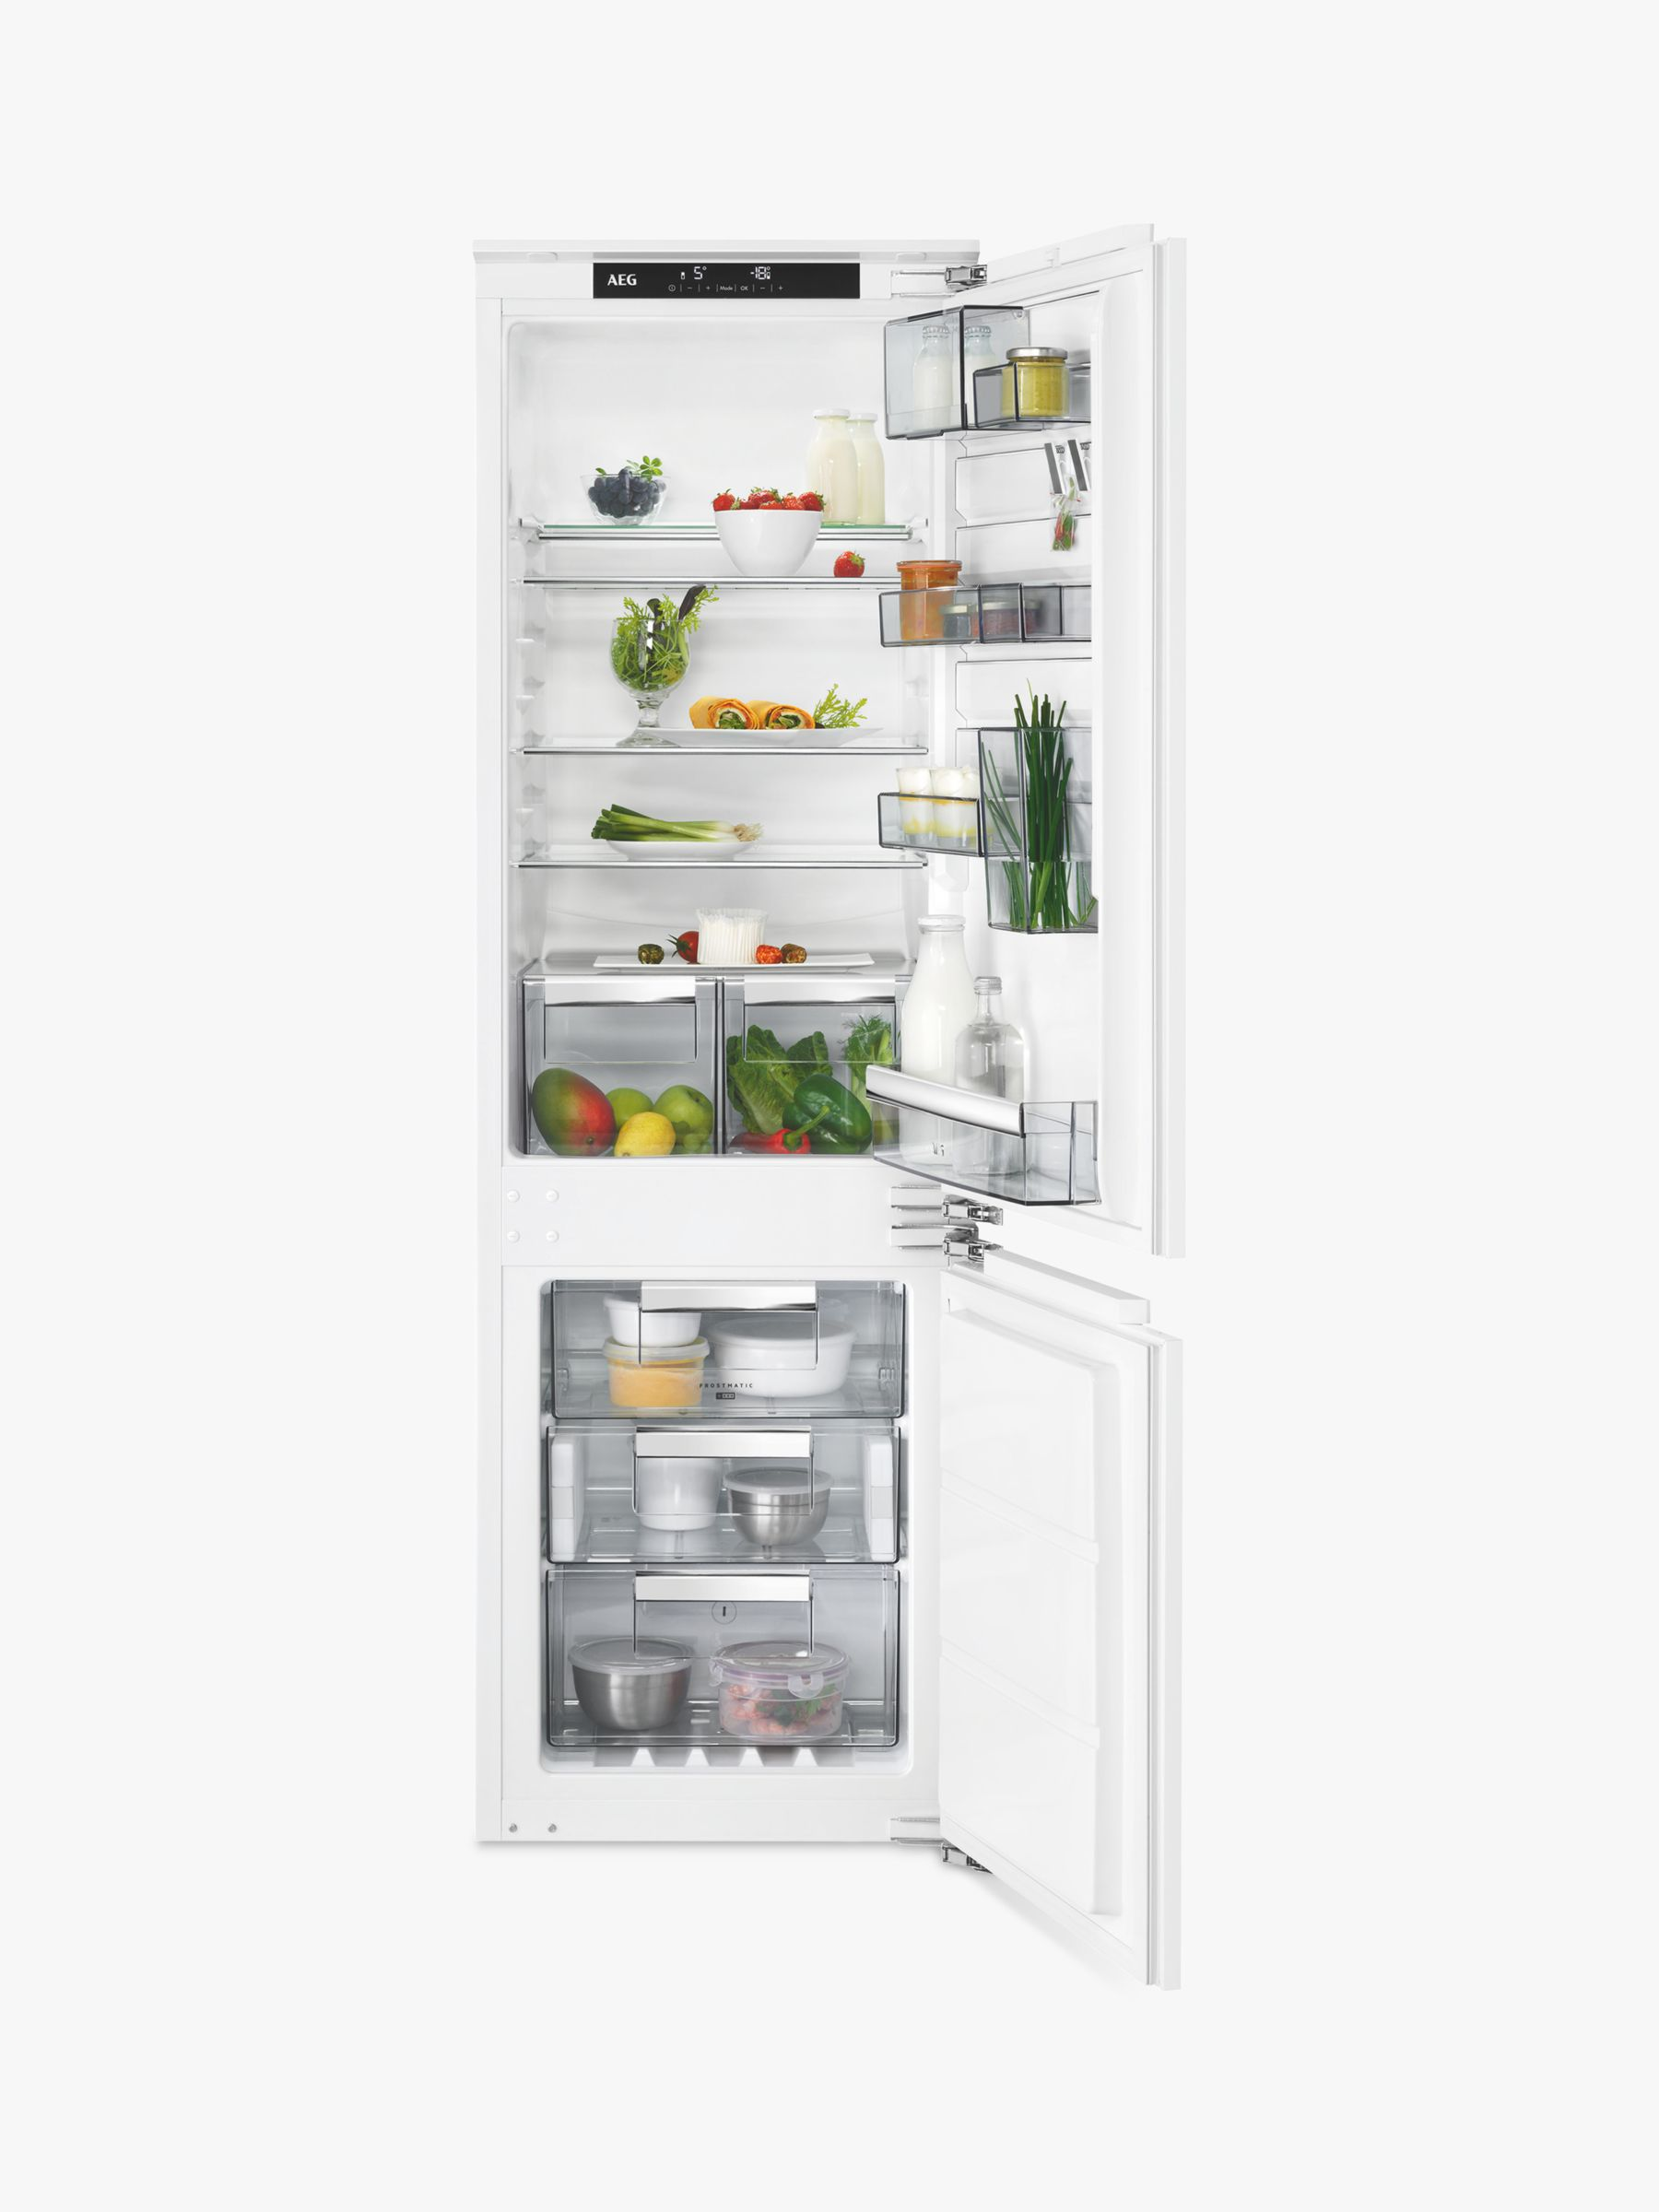 AEG AEG SCE8182VNC Integrated Fridge Freezer, A++ Energy Rating, 56cm Wide, White